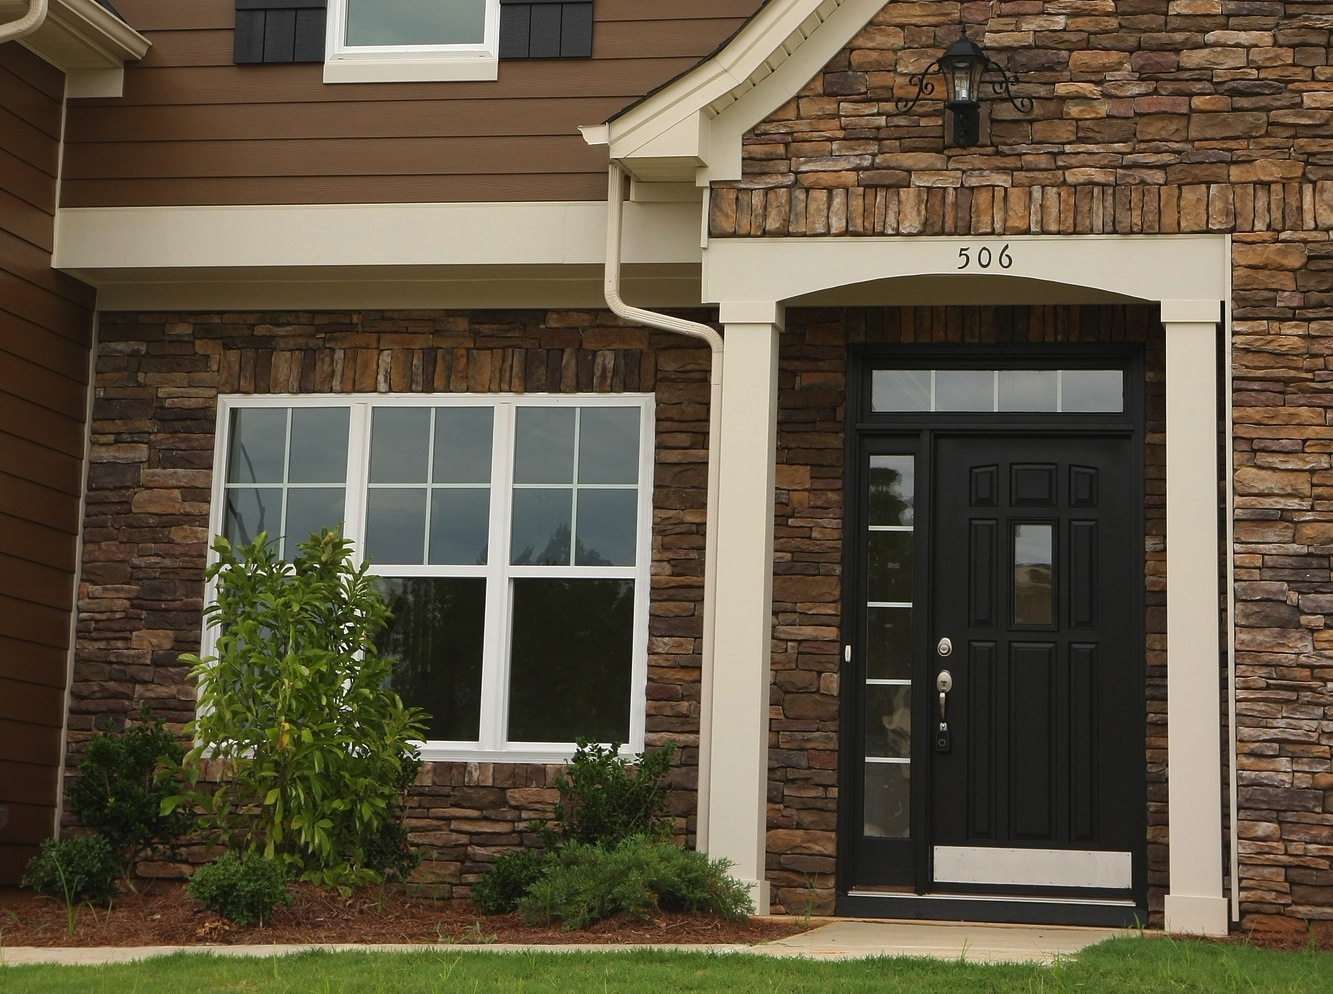 7 ideas to make neutral siding more exciting for your hoa - Door colors for brown house ...